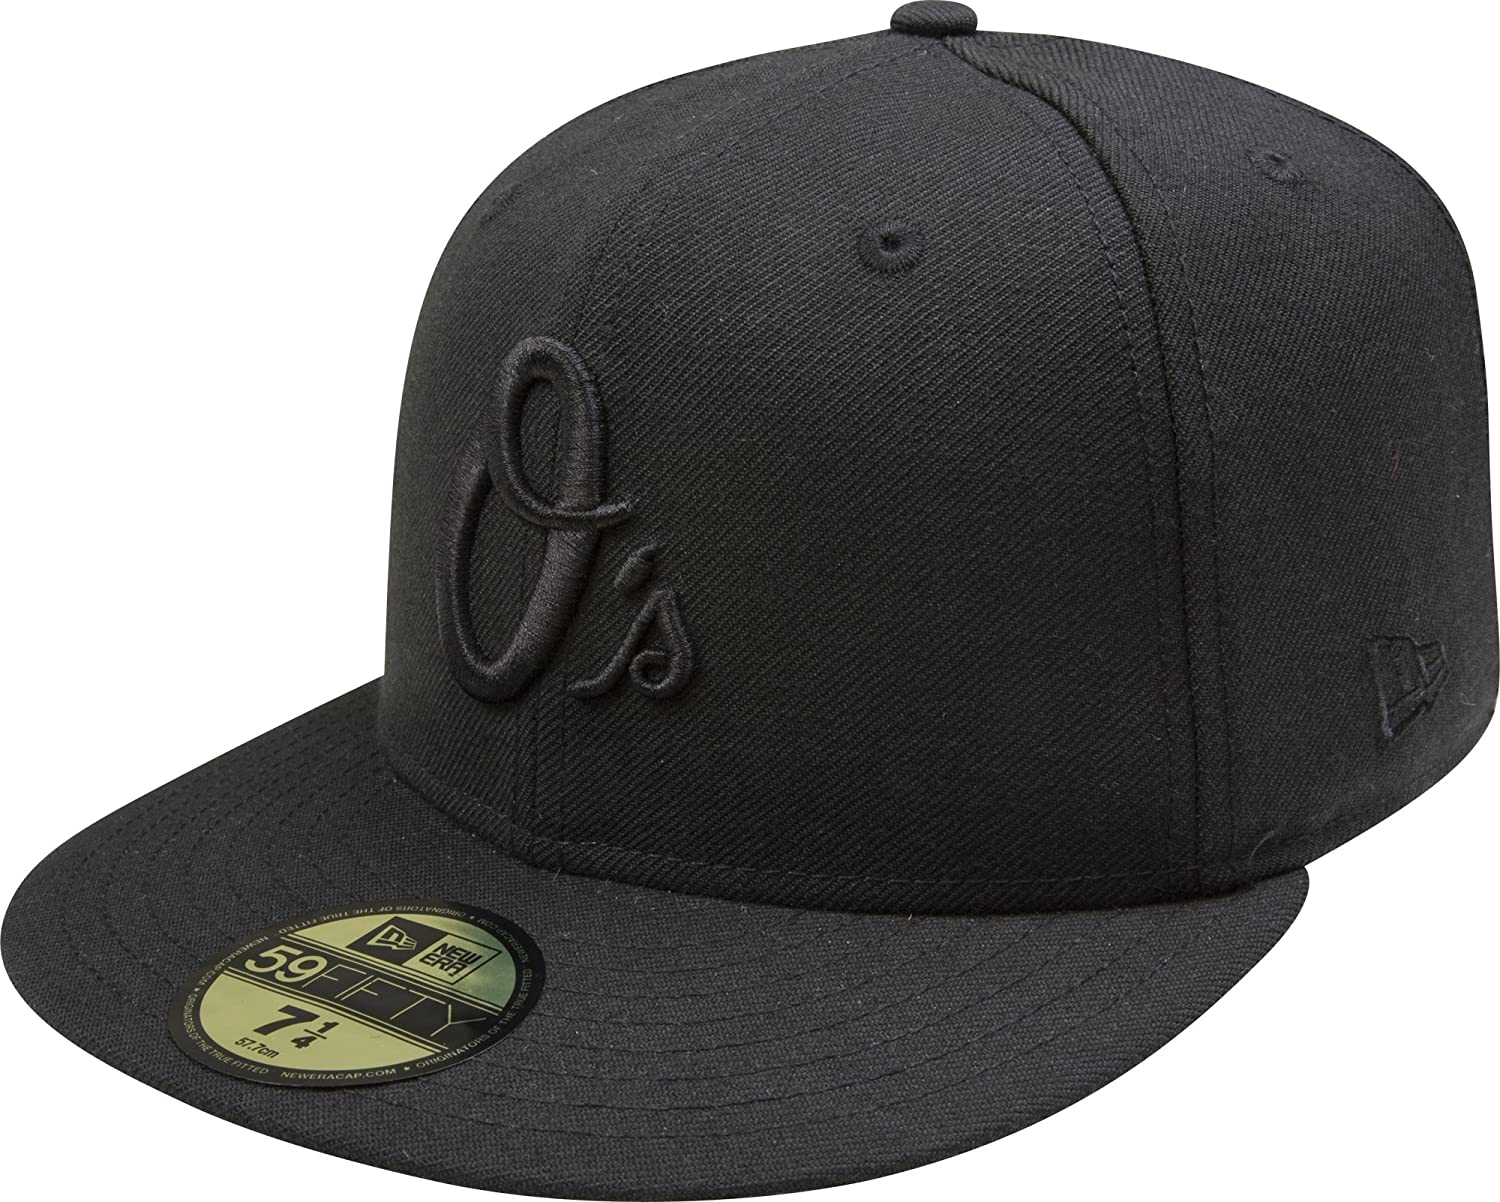 9c130482c New Era Baltimore Orioles 59Fifty Fitted Hat MLB Flat Bill Baseball Caps  5950